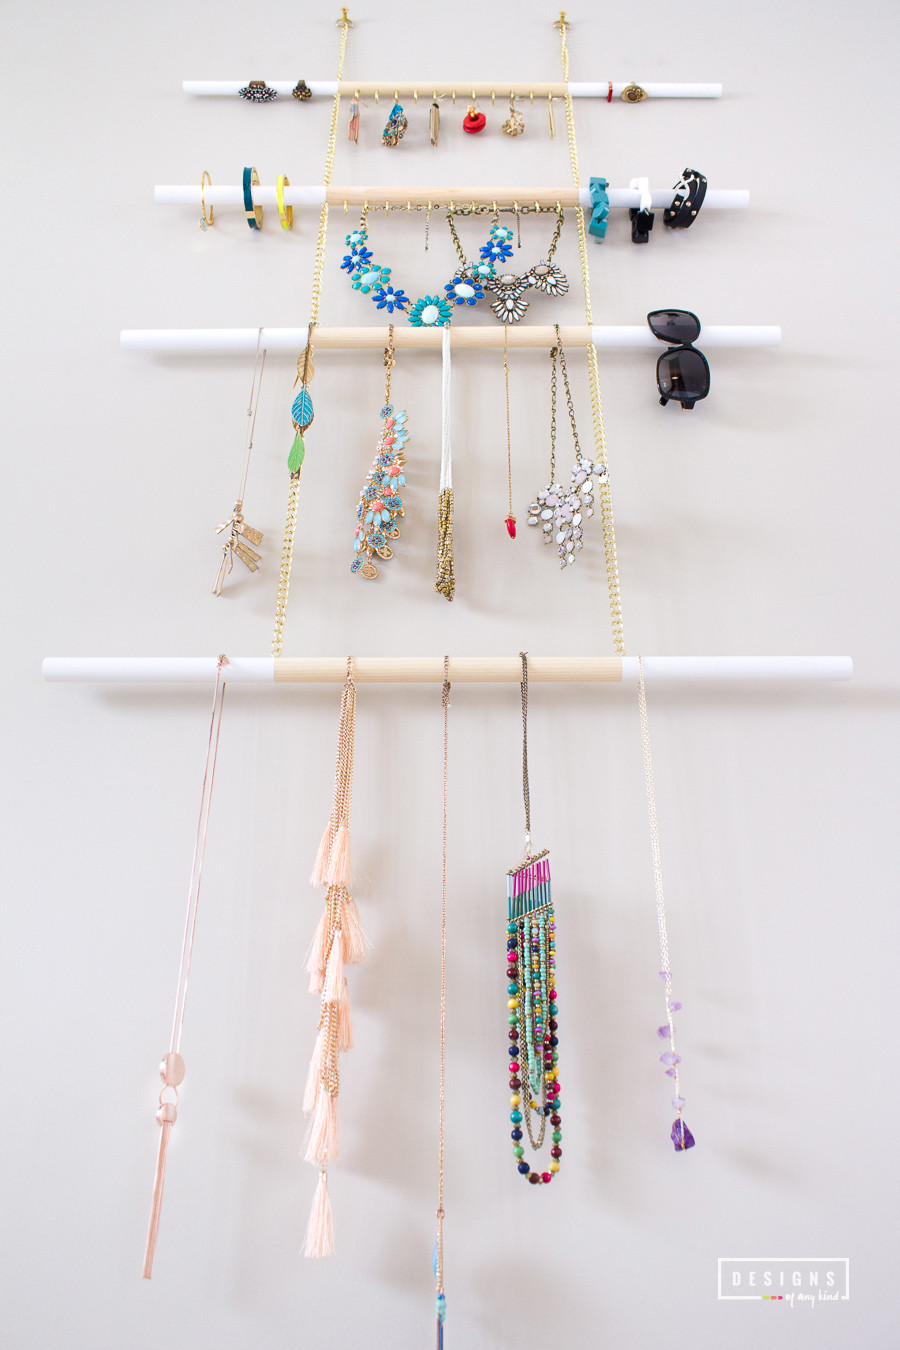 Hanging Jewelry Organizer DIY  DIY Modern Hanging Jewelry Organizer Designs of Any Kind